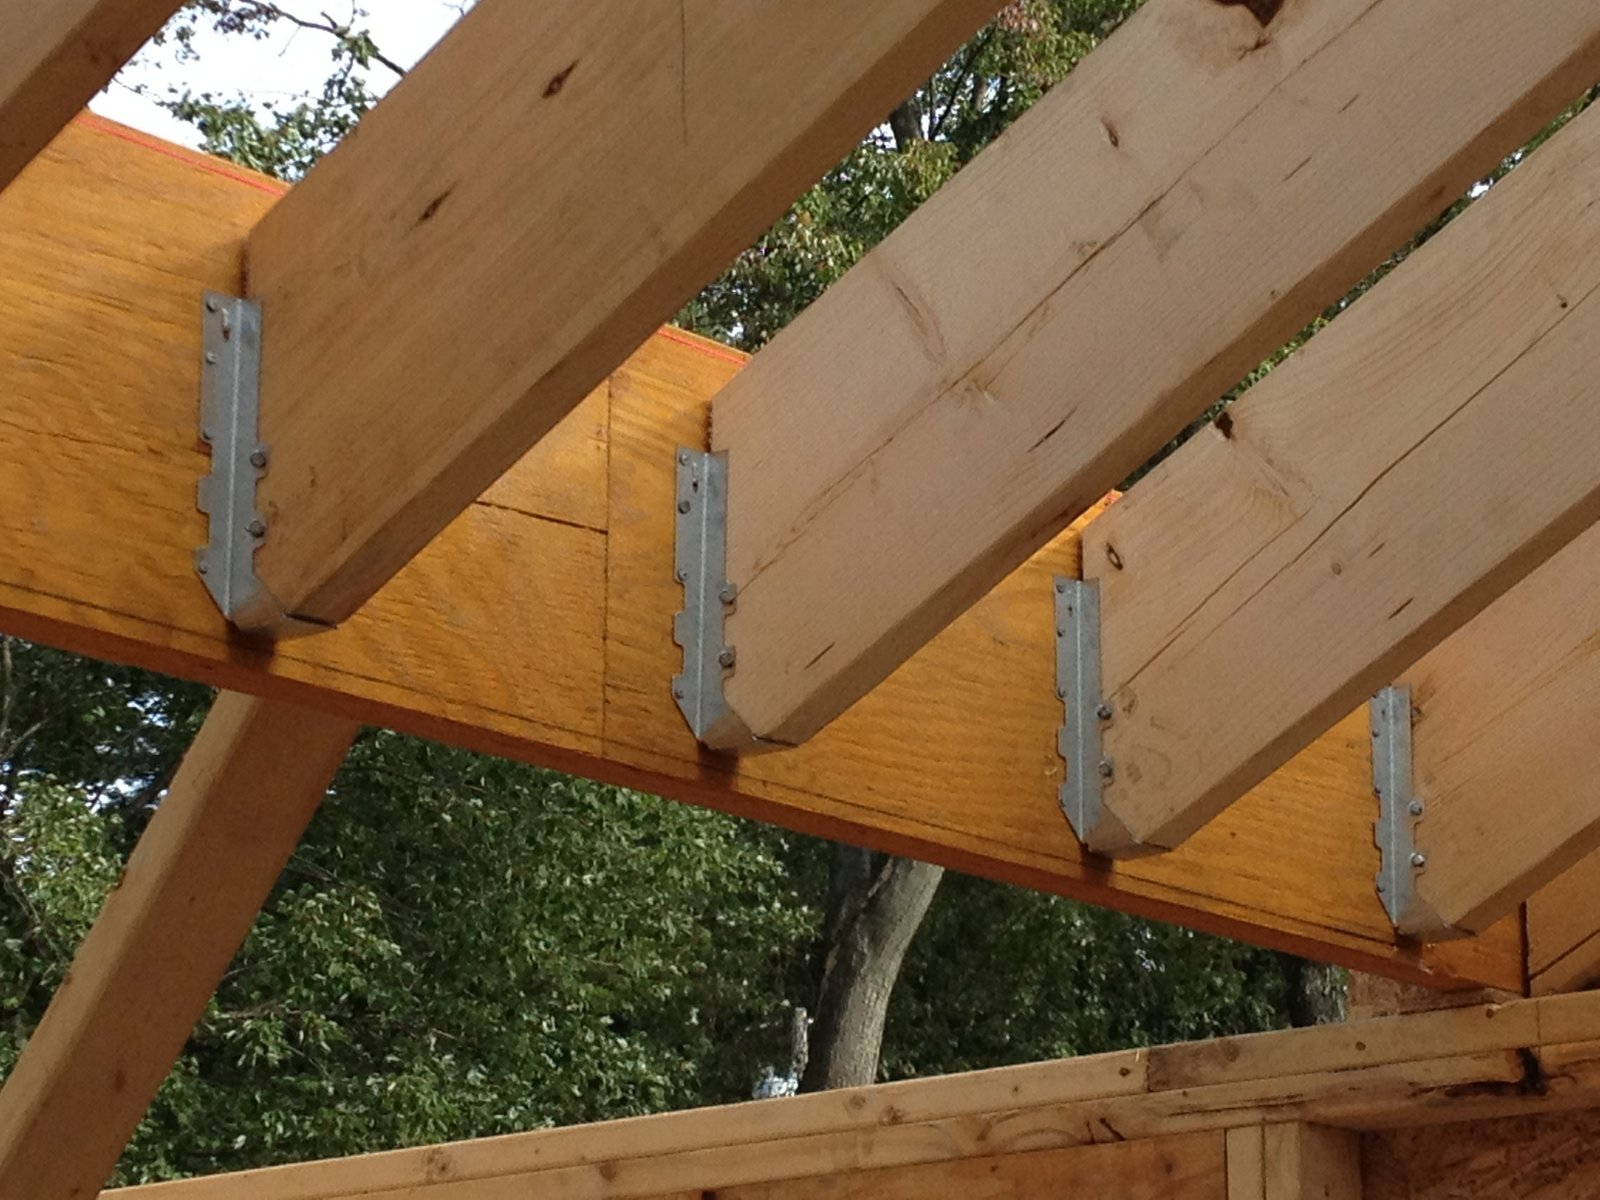 Pretty good lake house roof sheathing starts for Rafter beam